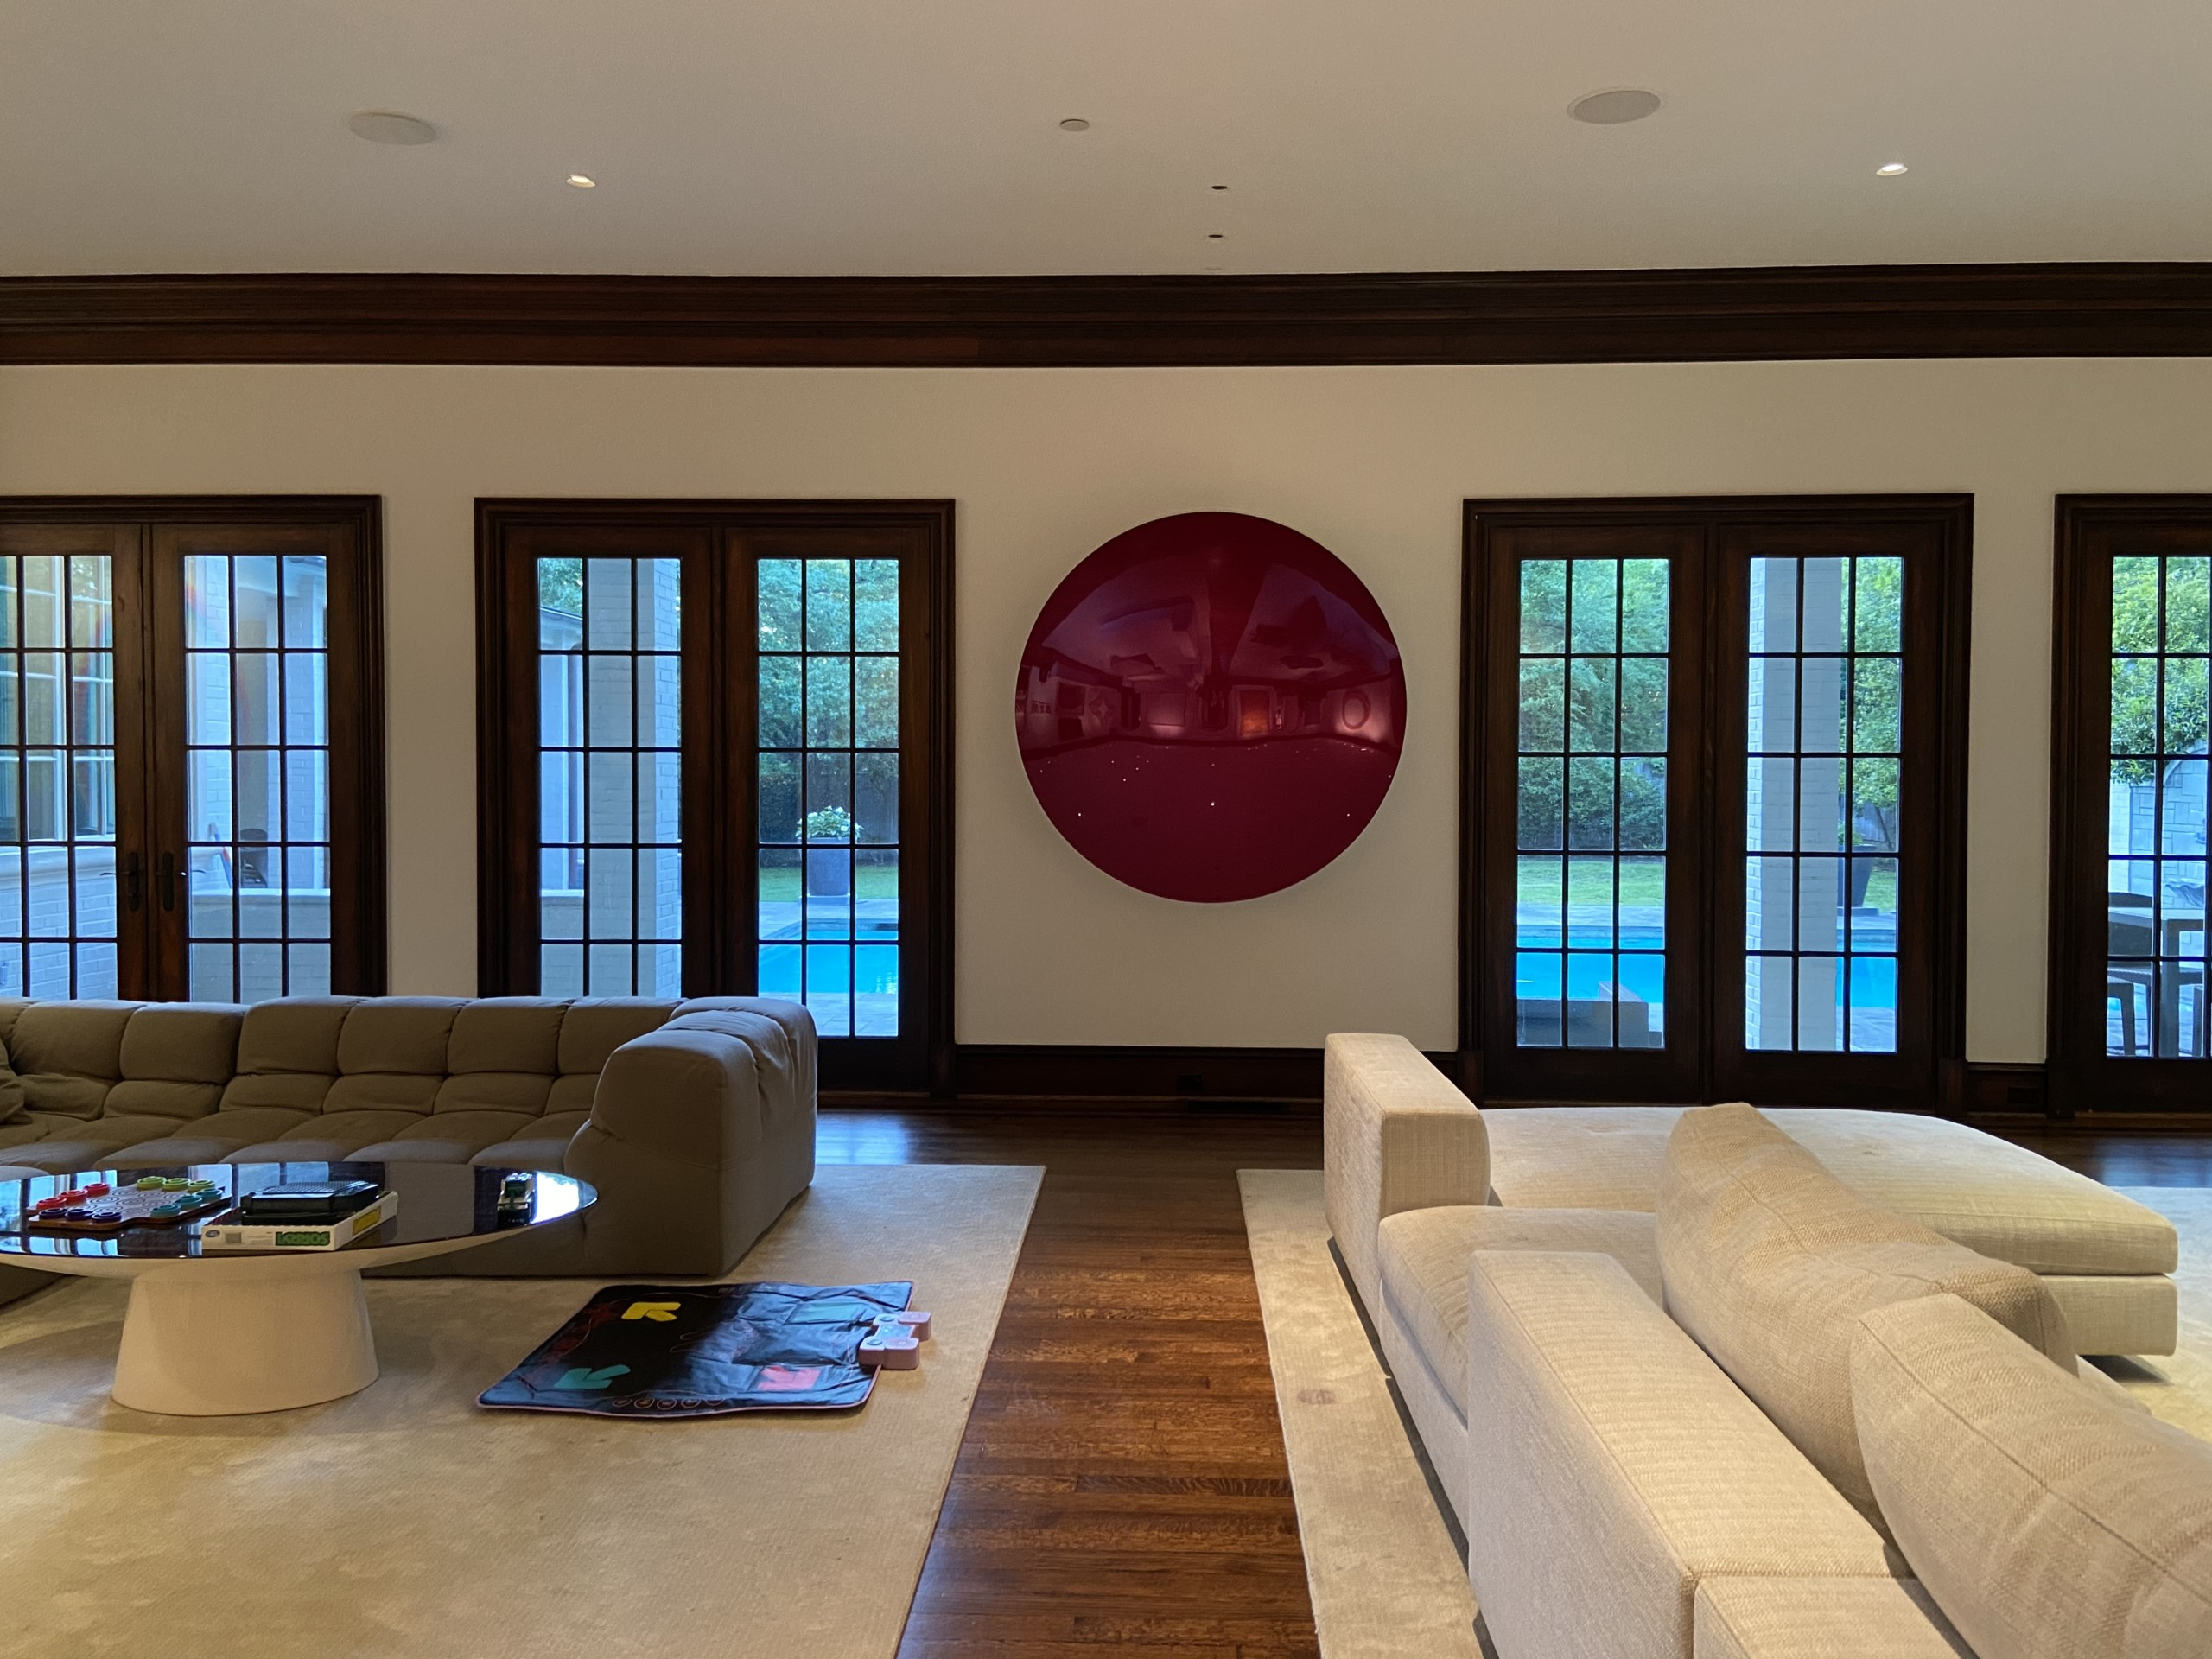 art collector's living room space with large couches and circular art piece hanging in between windows Mark Giambrone